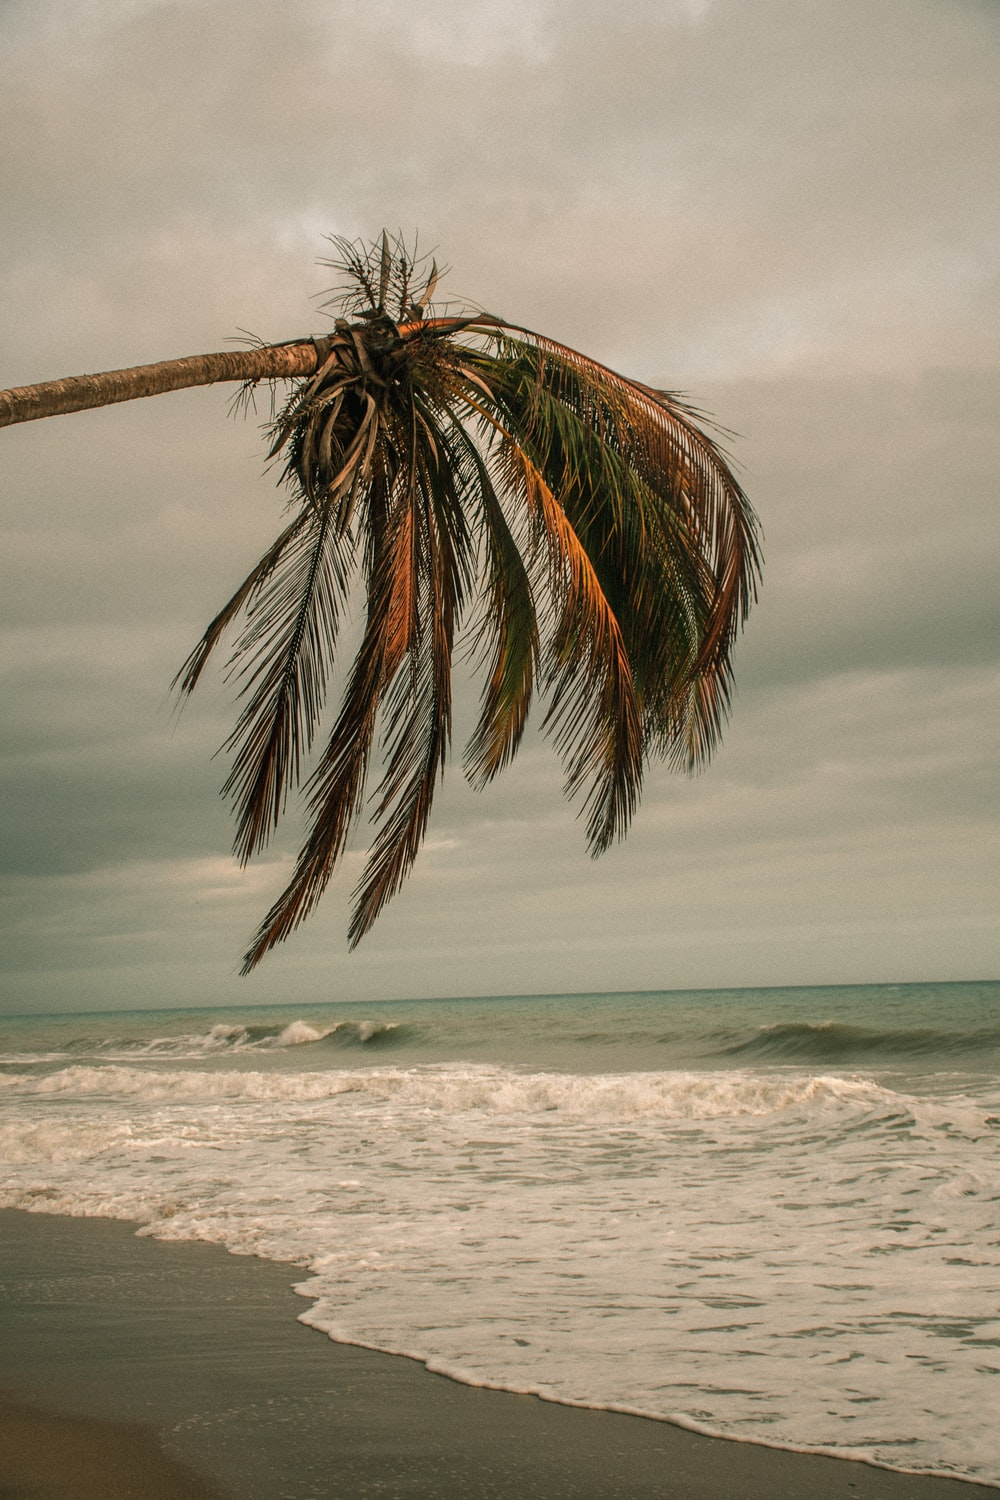 palm tree near sea under cloudy sky during daytime